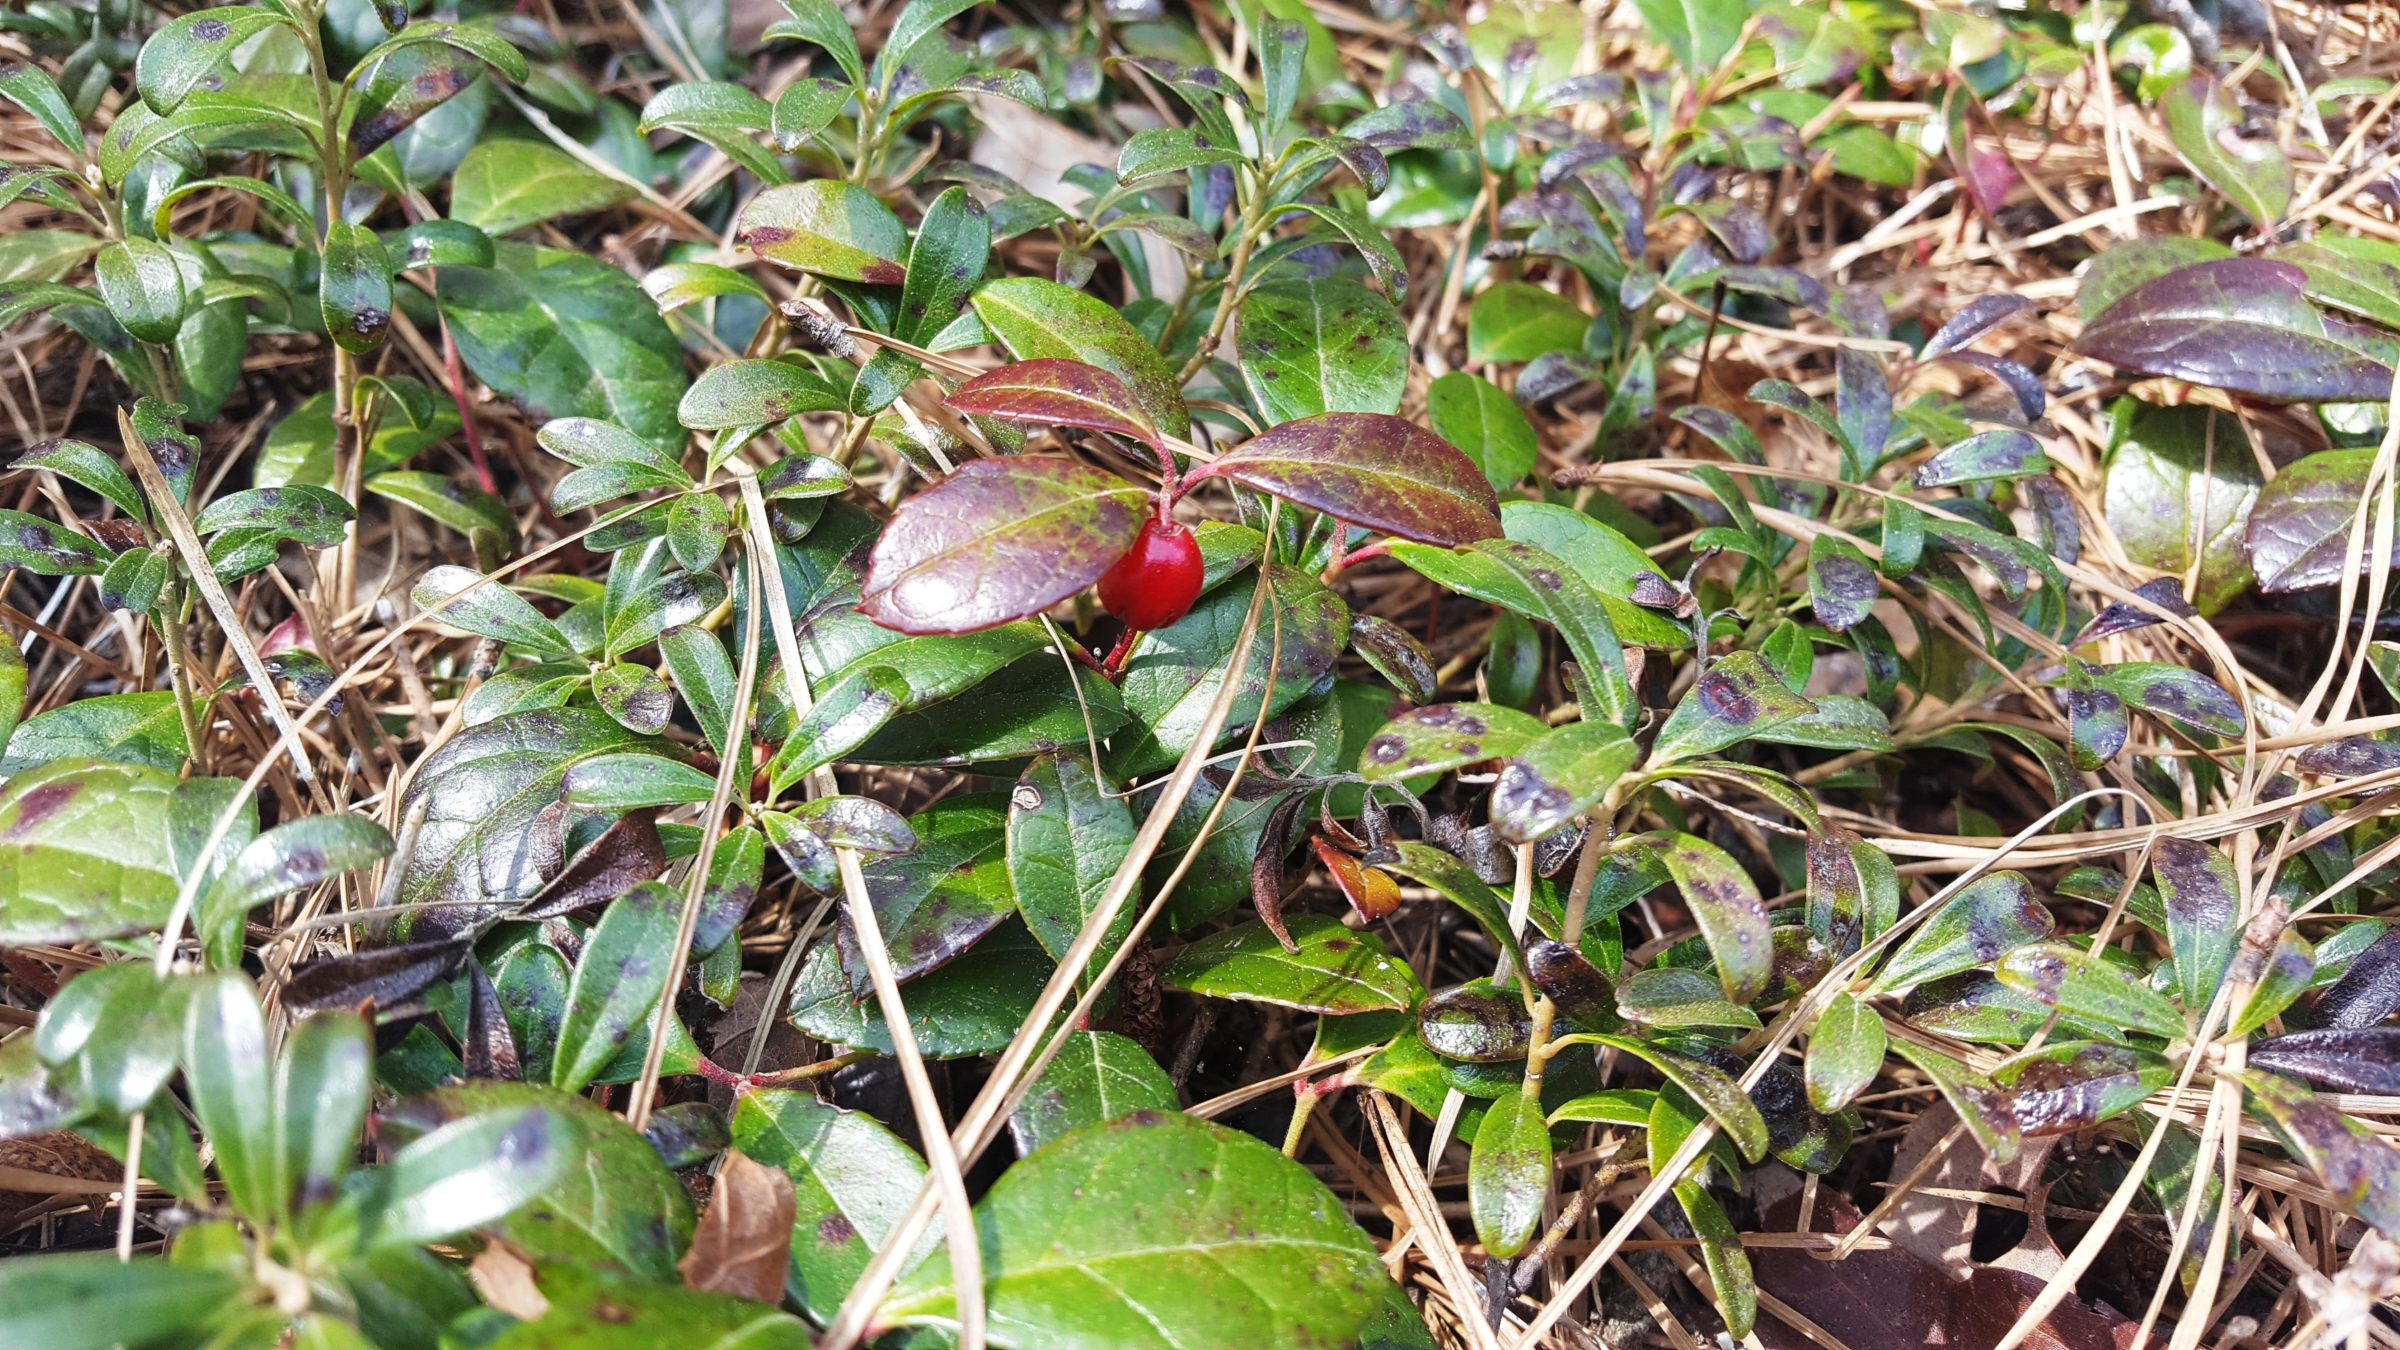 Wintergreen plant with red berry